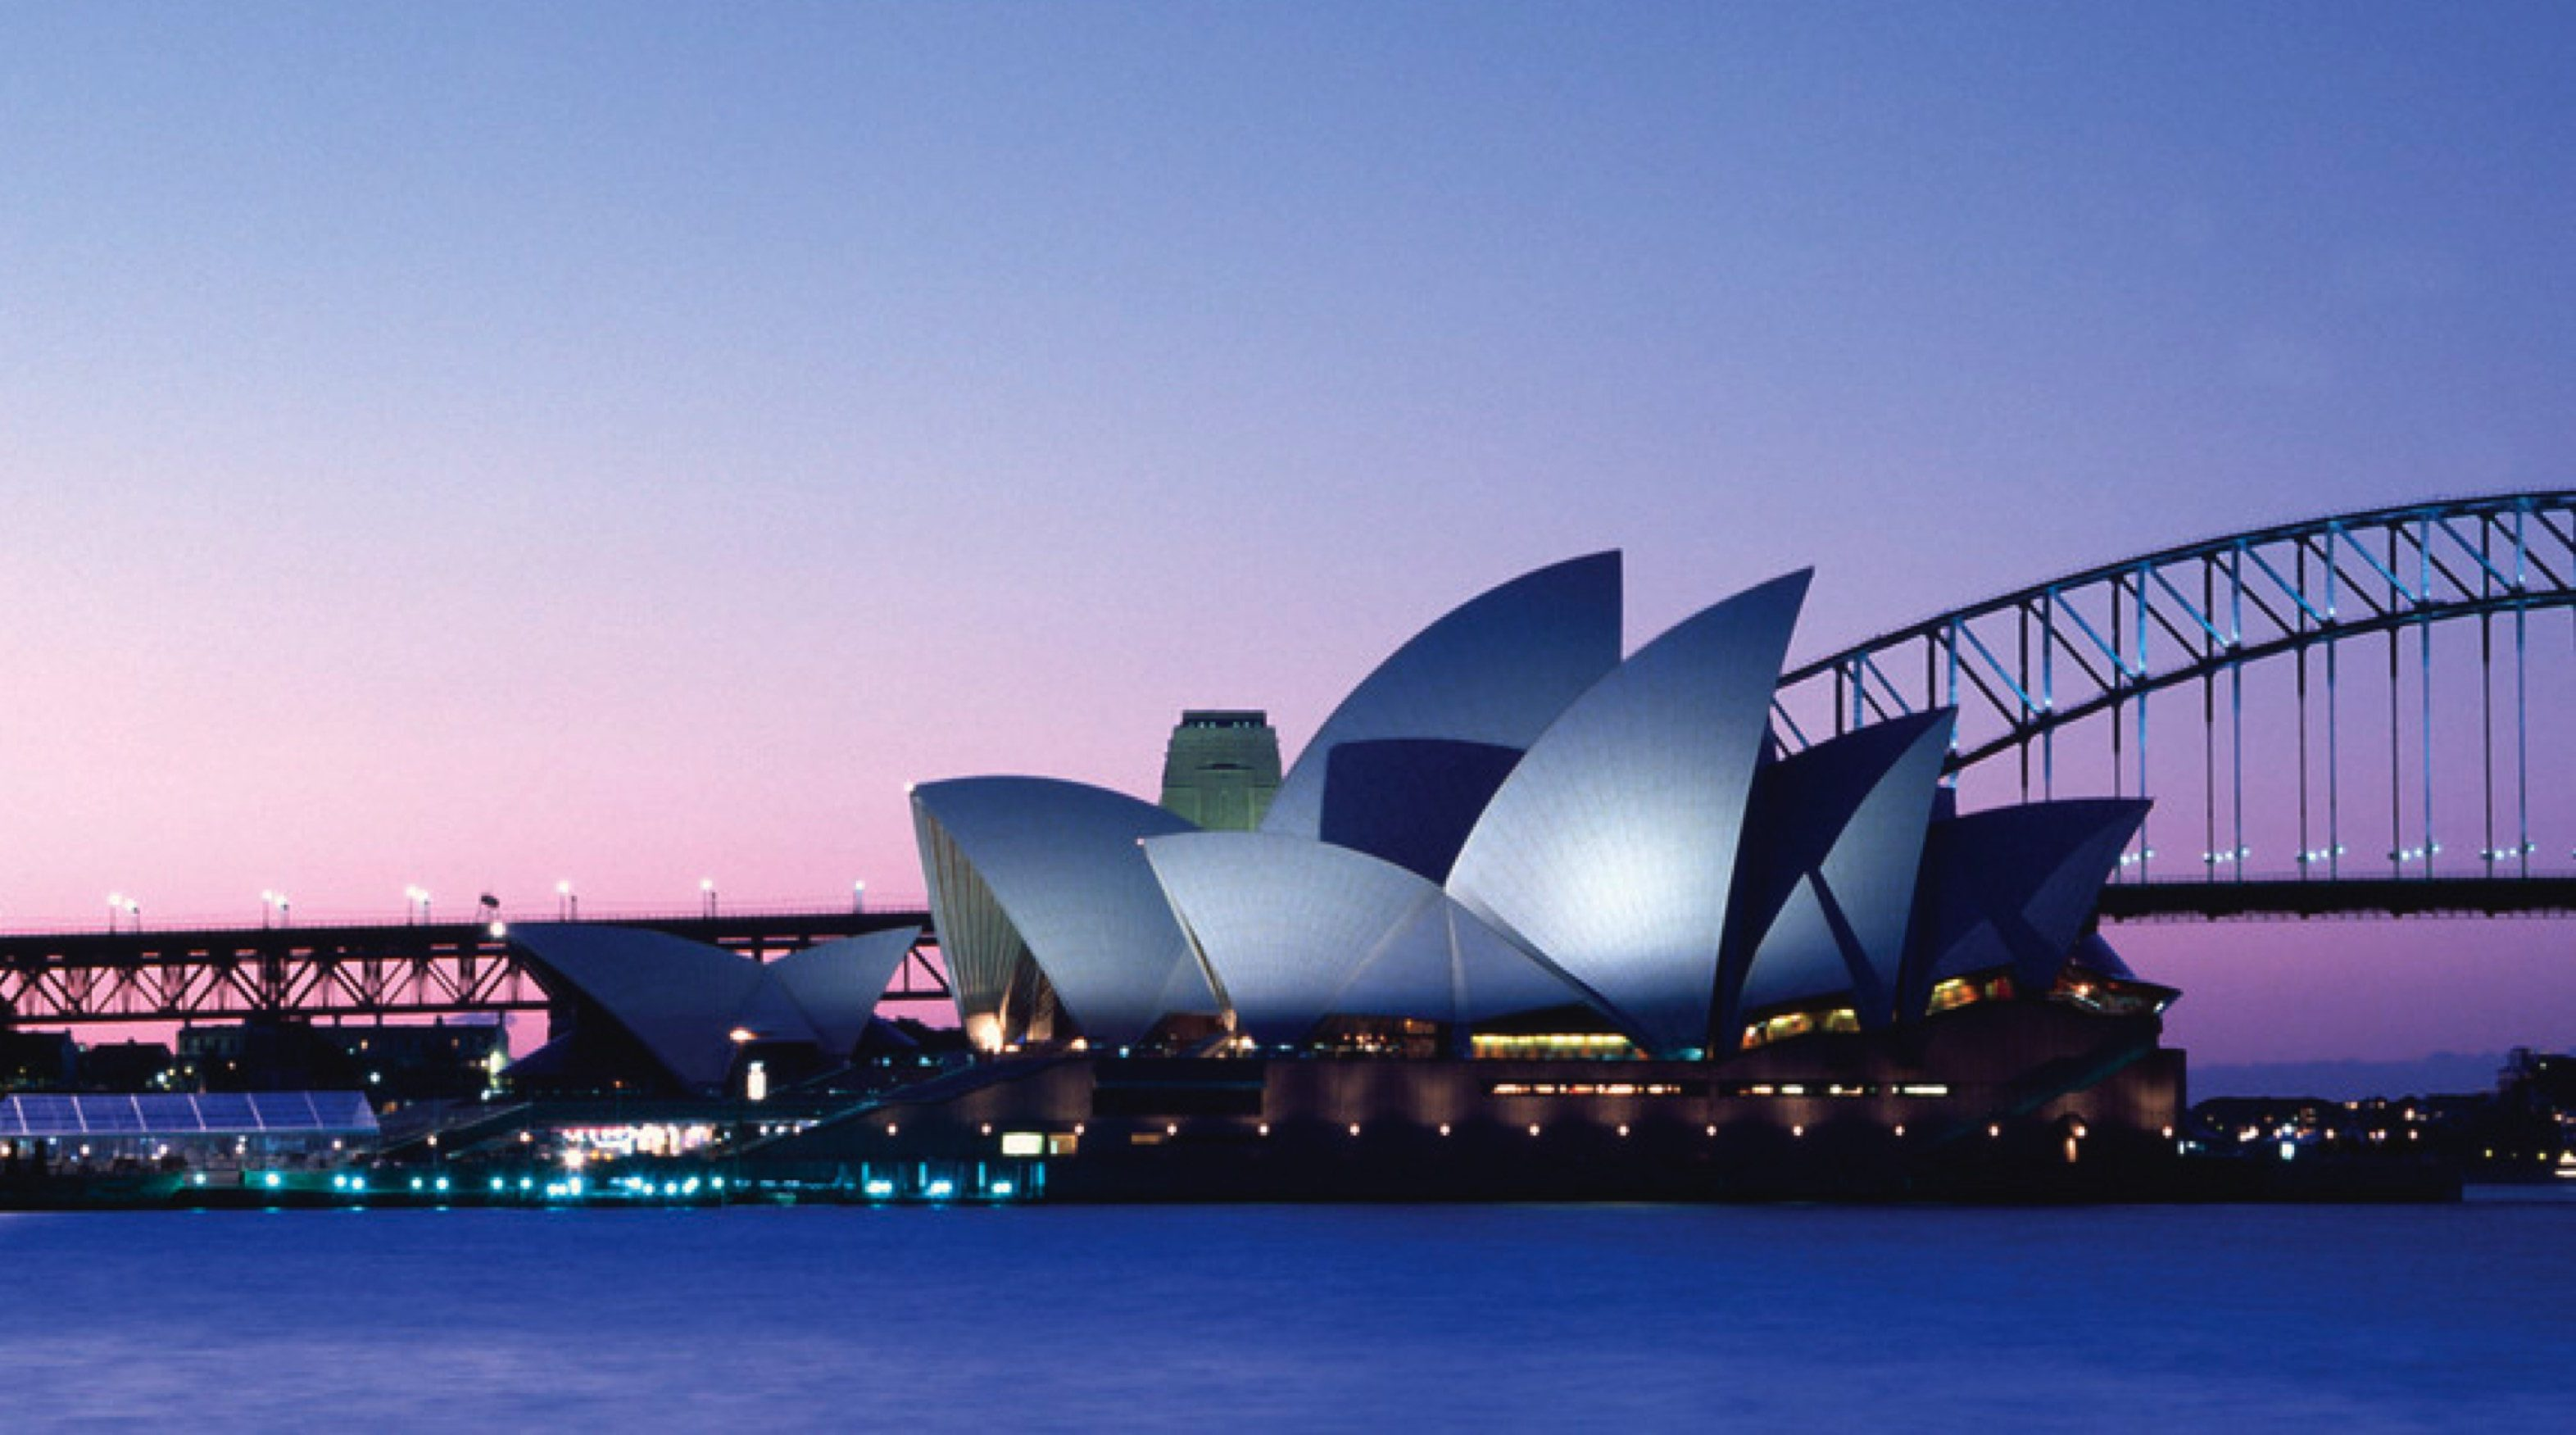 Sydney Opera House to host Opening Ceremony - Invictus Games Sydney 2018